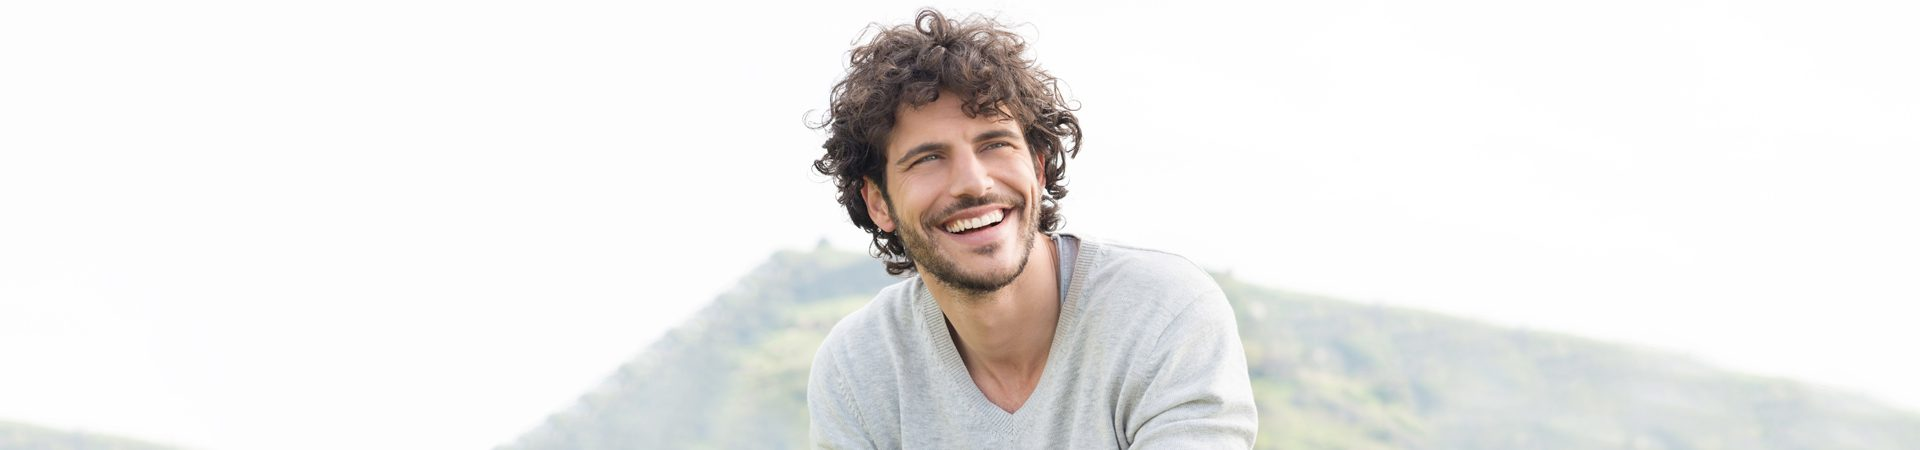 What Can I Do to Maintain My Brighter Smile in Whitby?